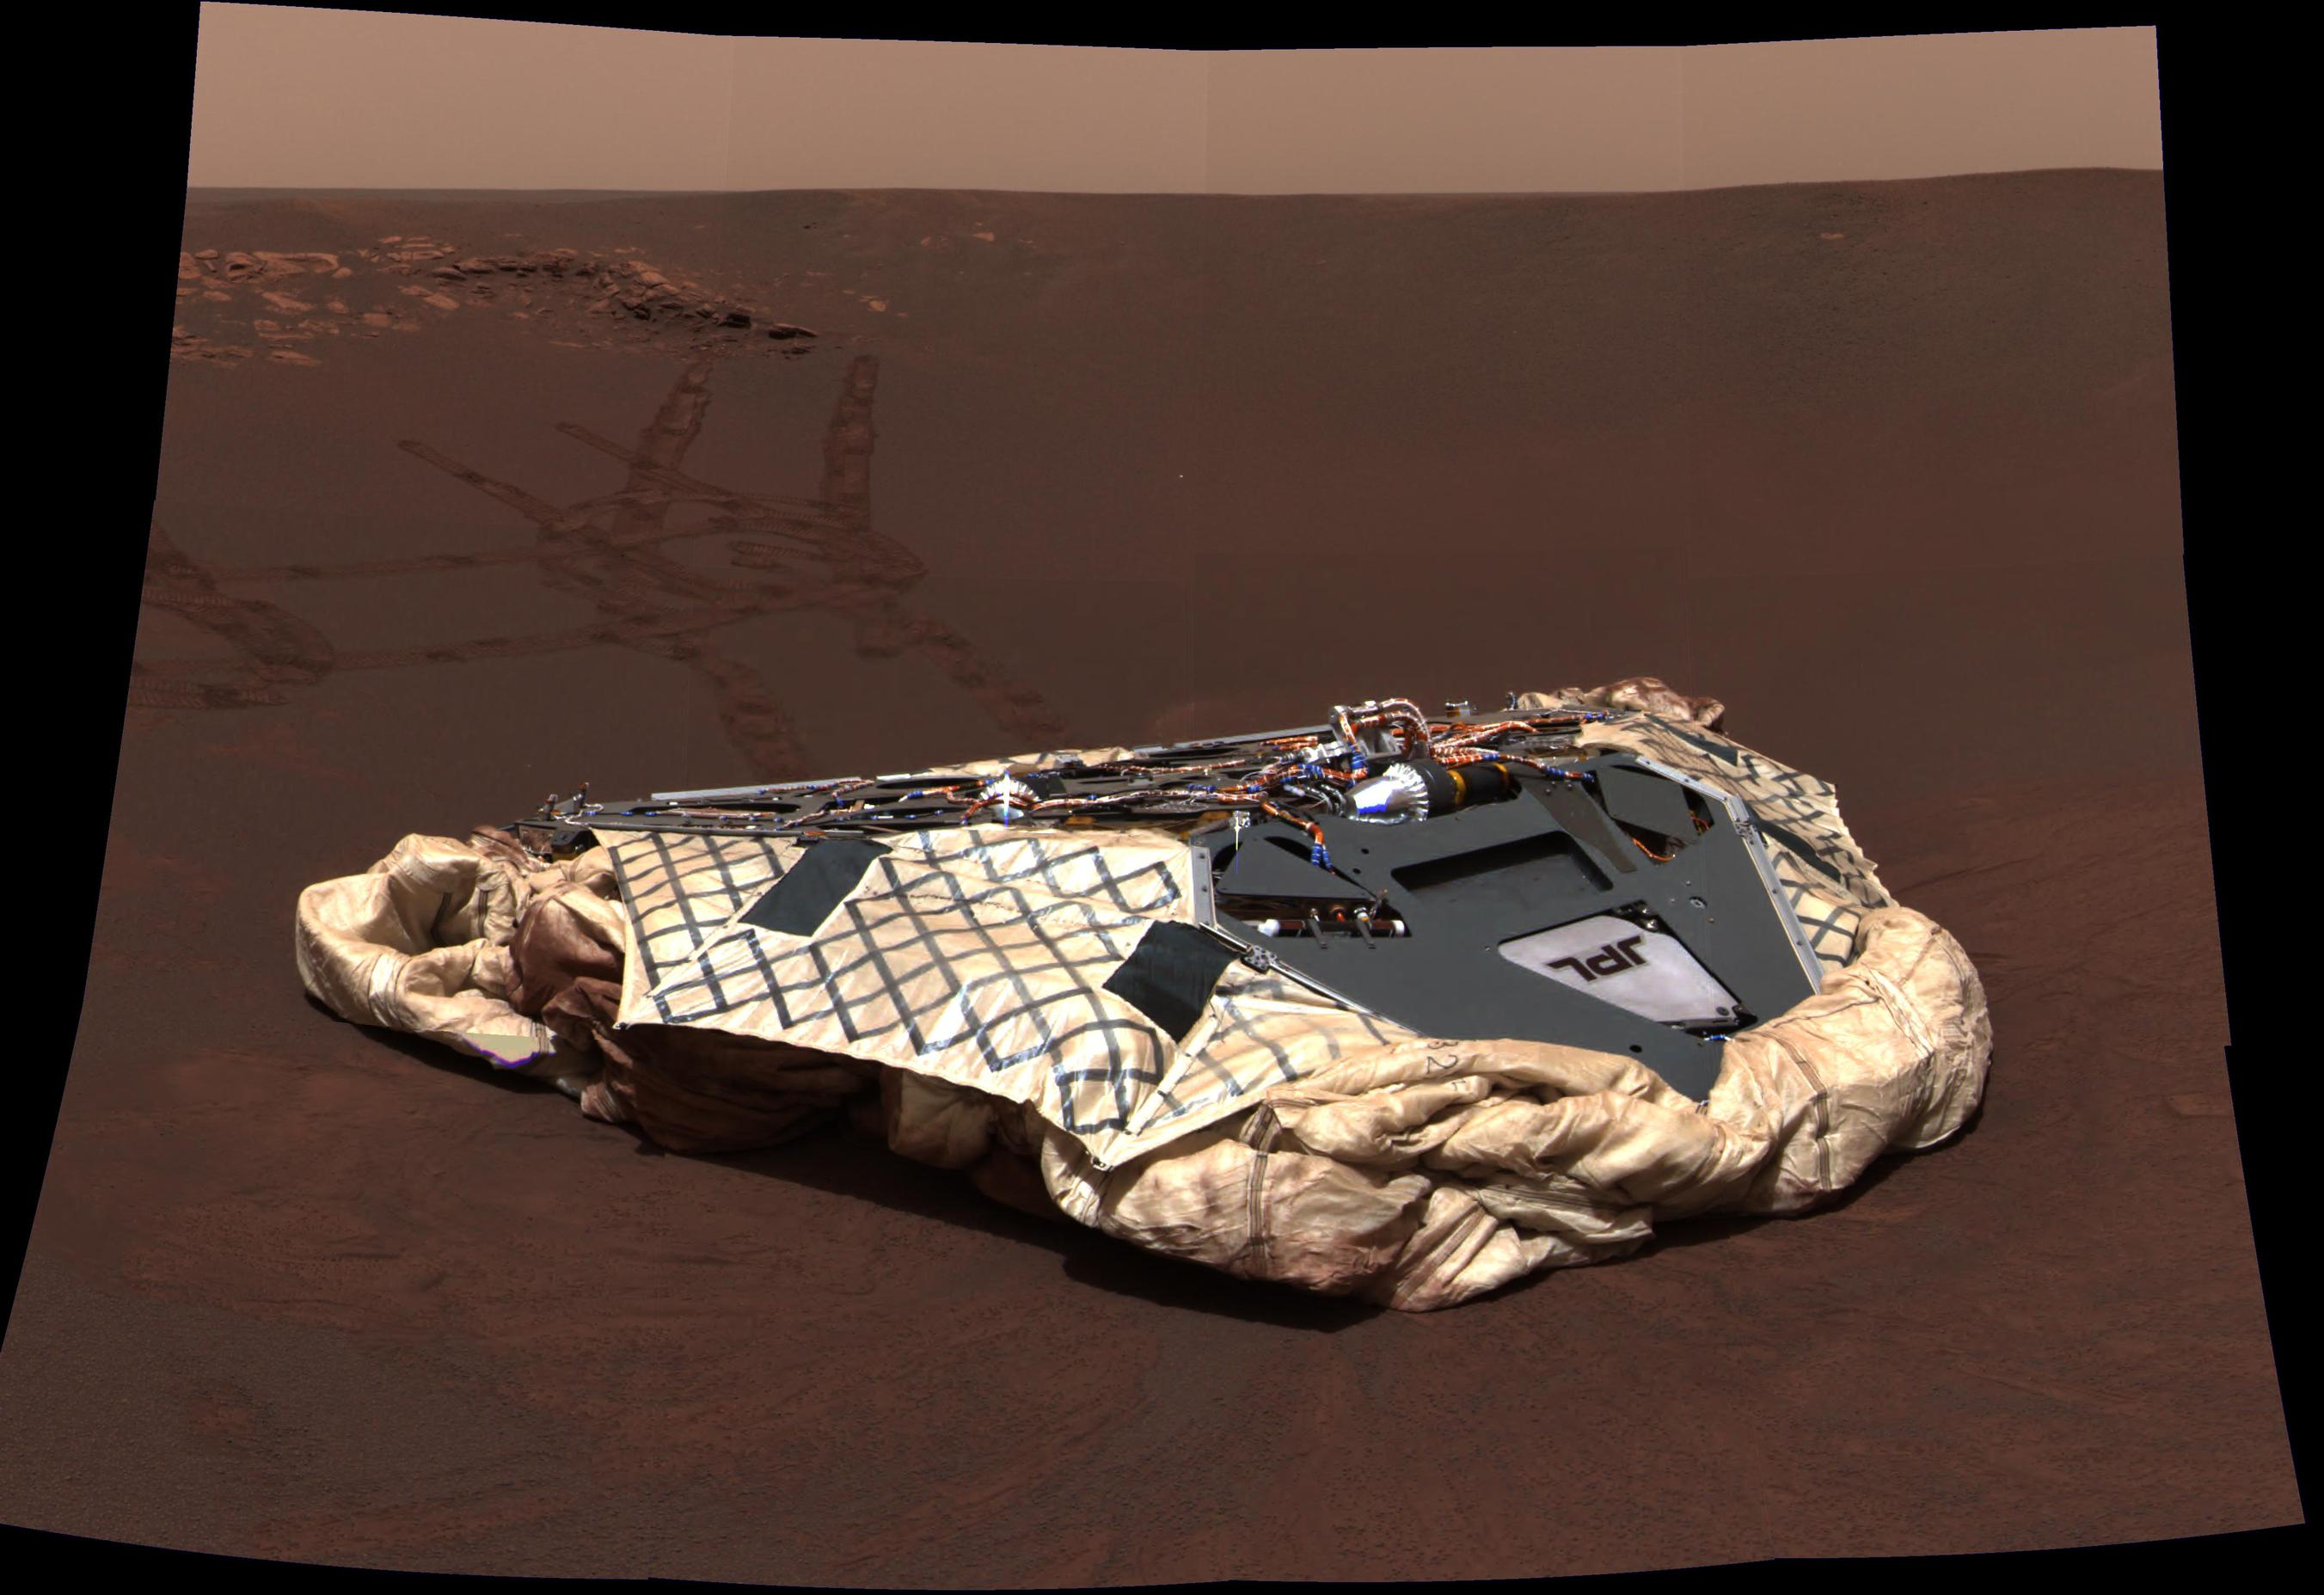 This image taken by the panoramic camera onboard Opportunity shows the rover's now-empty lander, the Challenger Memorial Station, at Meridiani Planum, Mars.